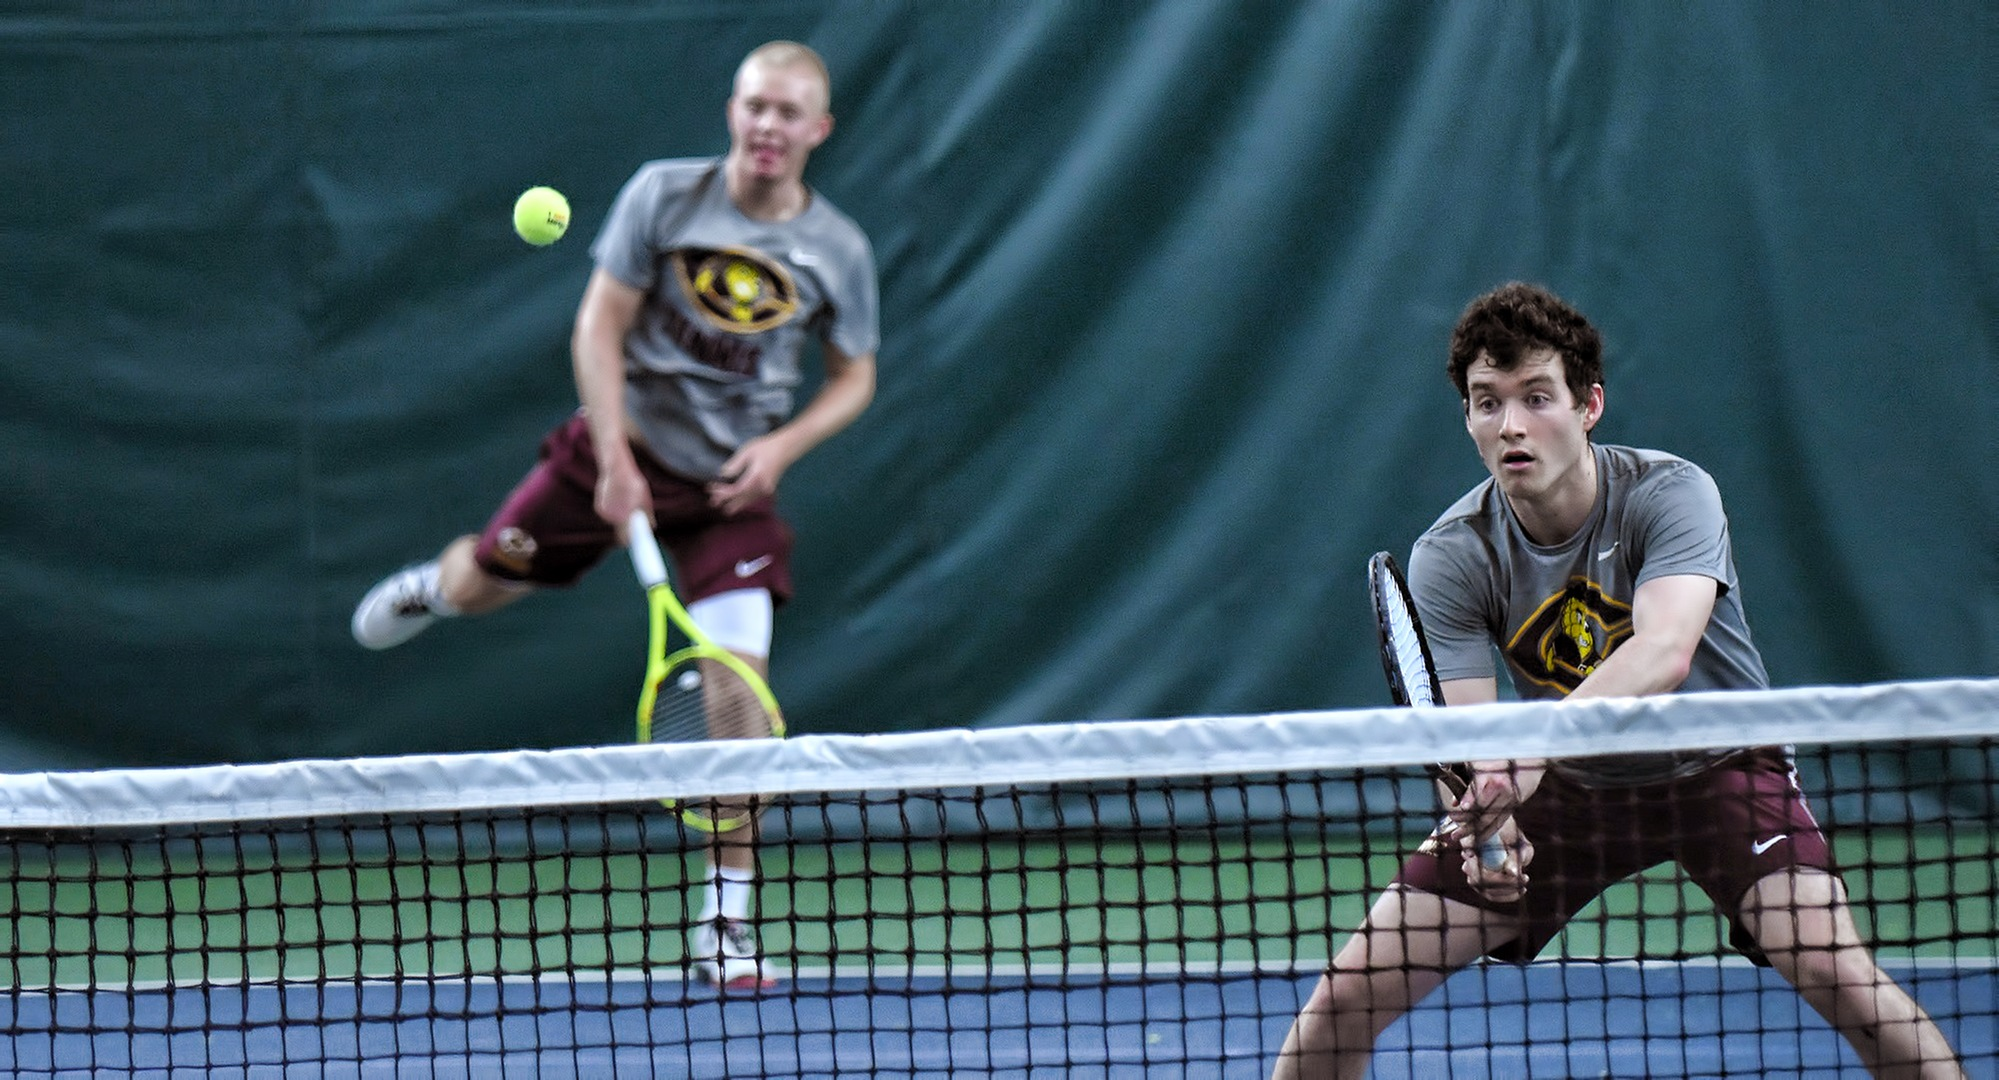 The Cobber No.1 doubles team of Jared Saue (L) and Erik Porter rolled to an 8-1 against St. Scholastica and have now won a pair of matches on the year.